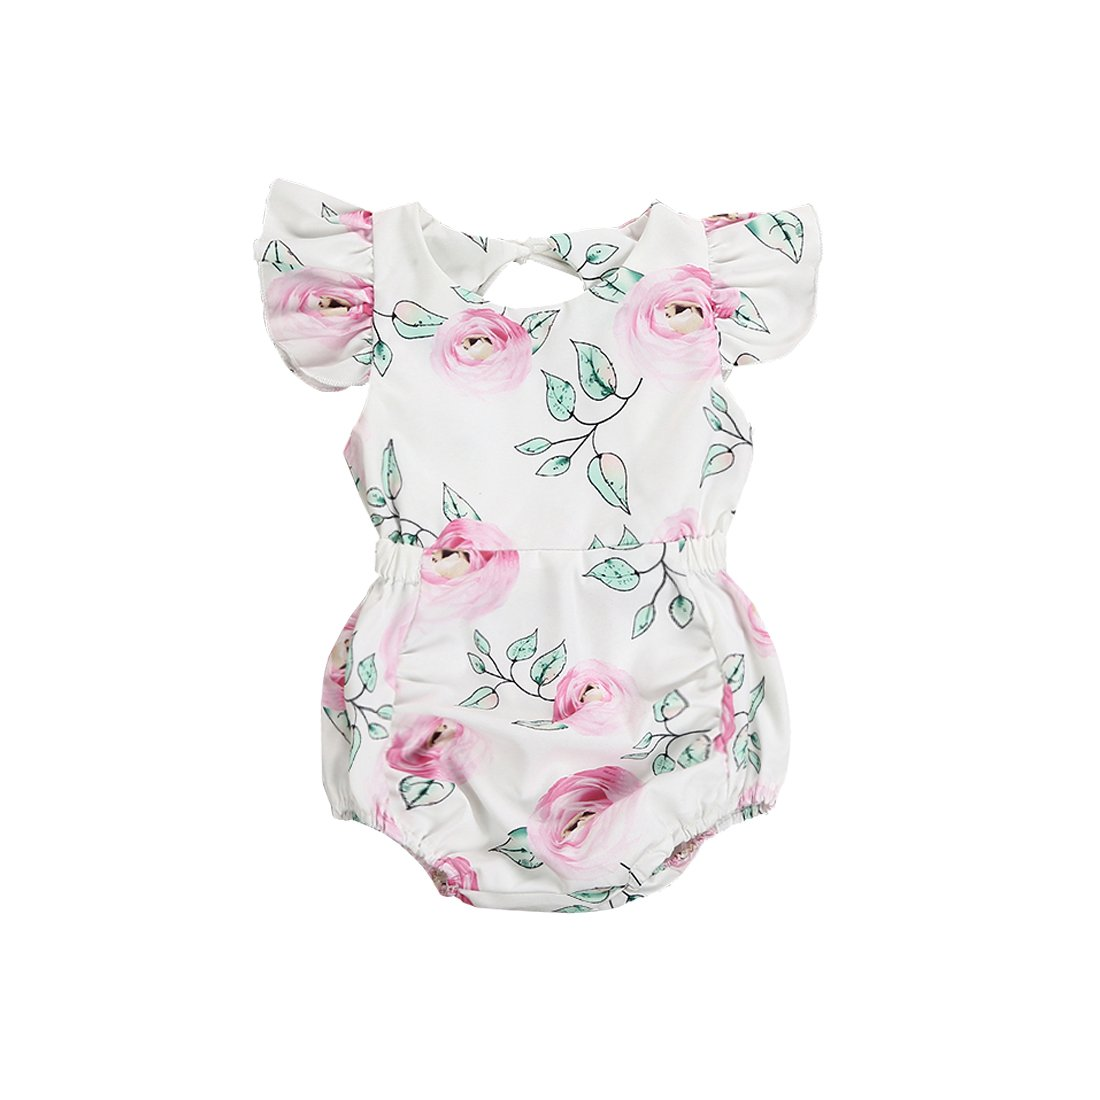 4d20522c7 Lenny Lemons is one of the leading baby clothing stores offering a ...